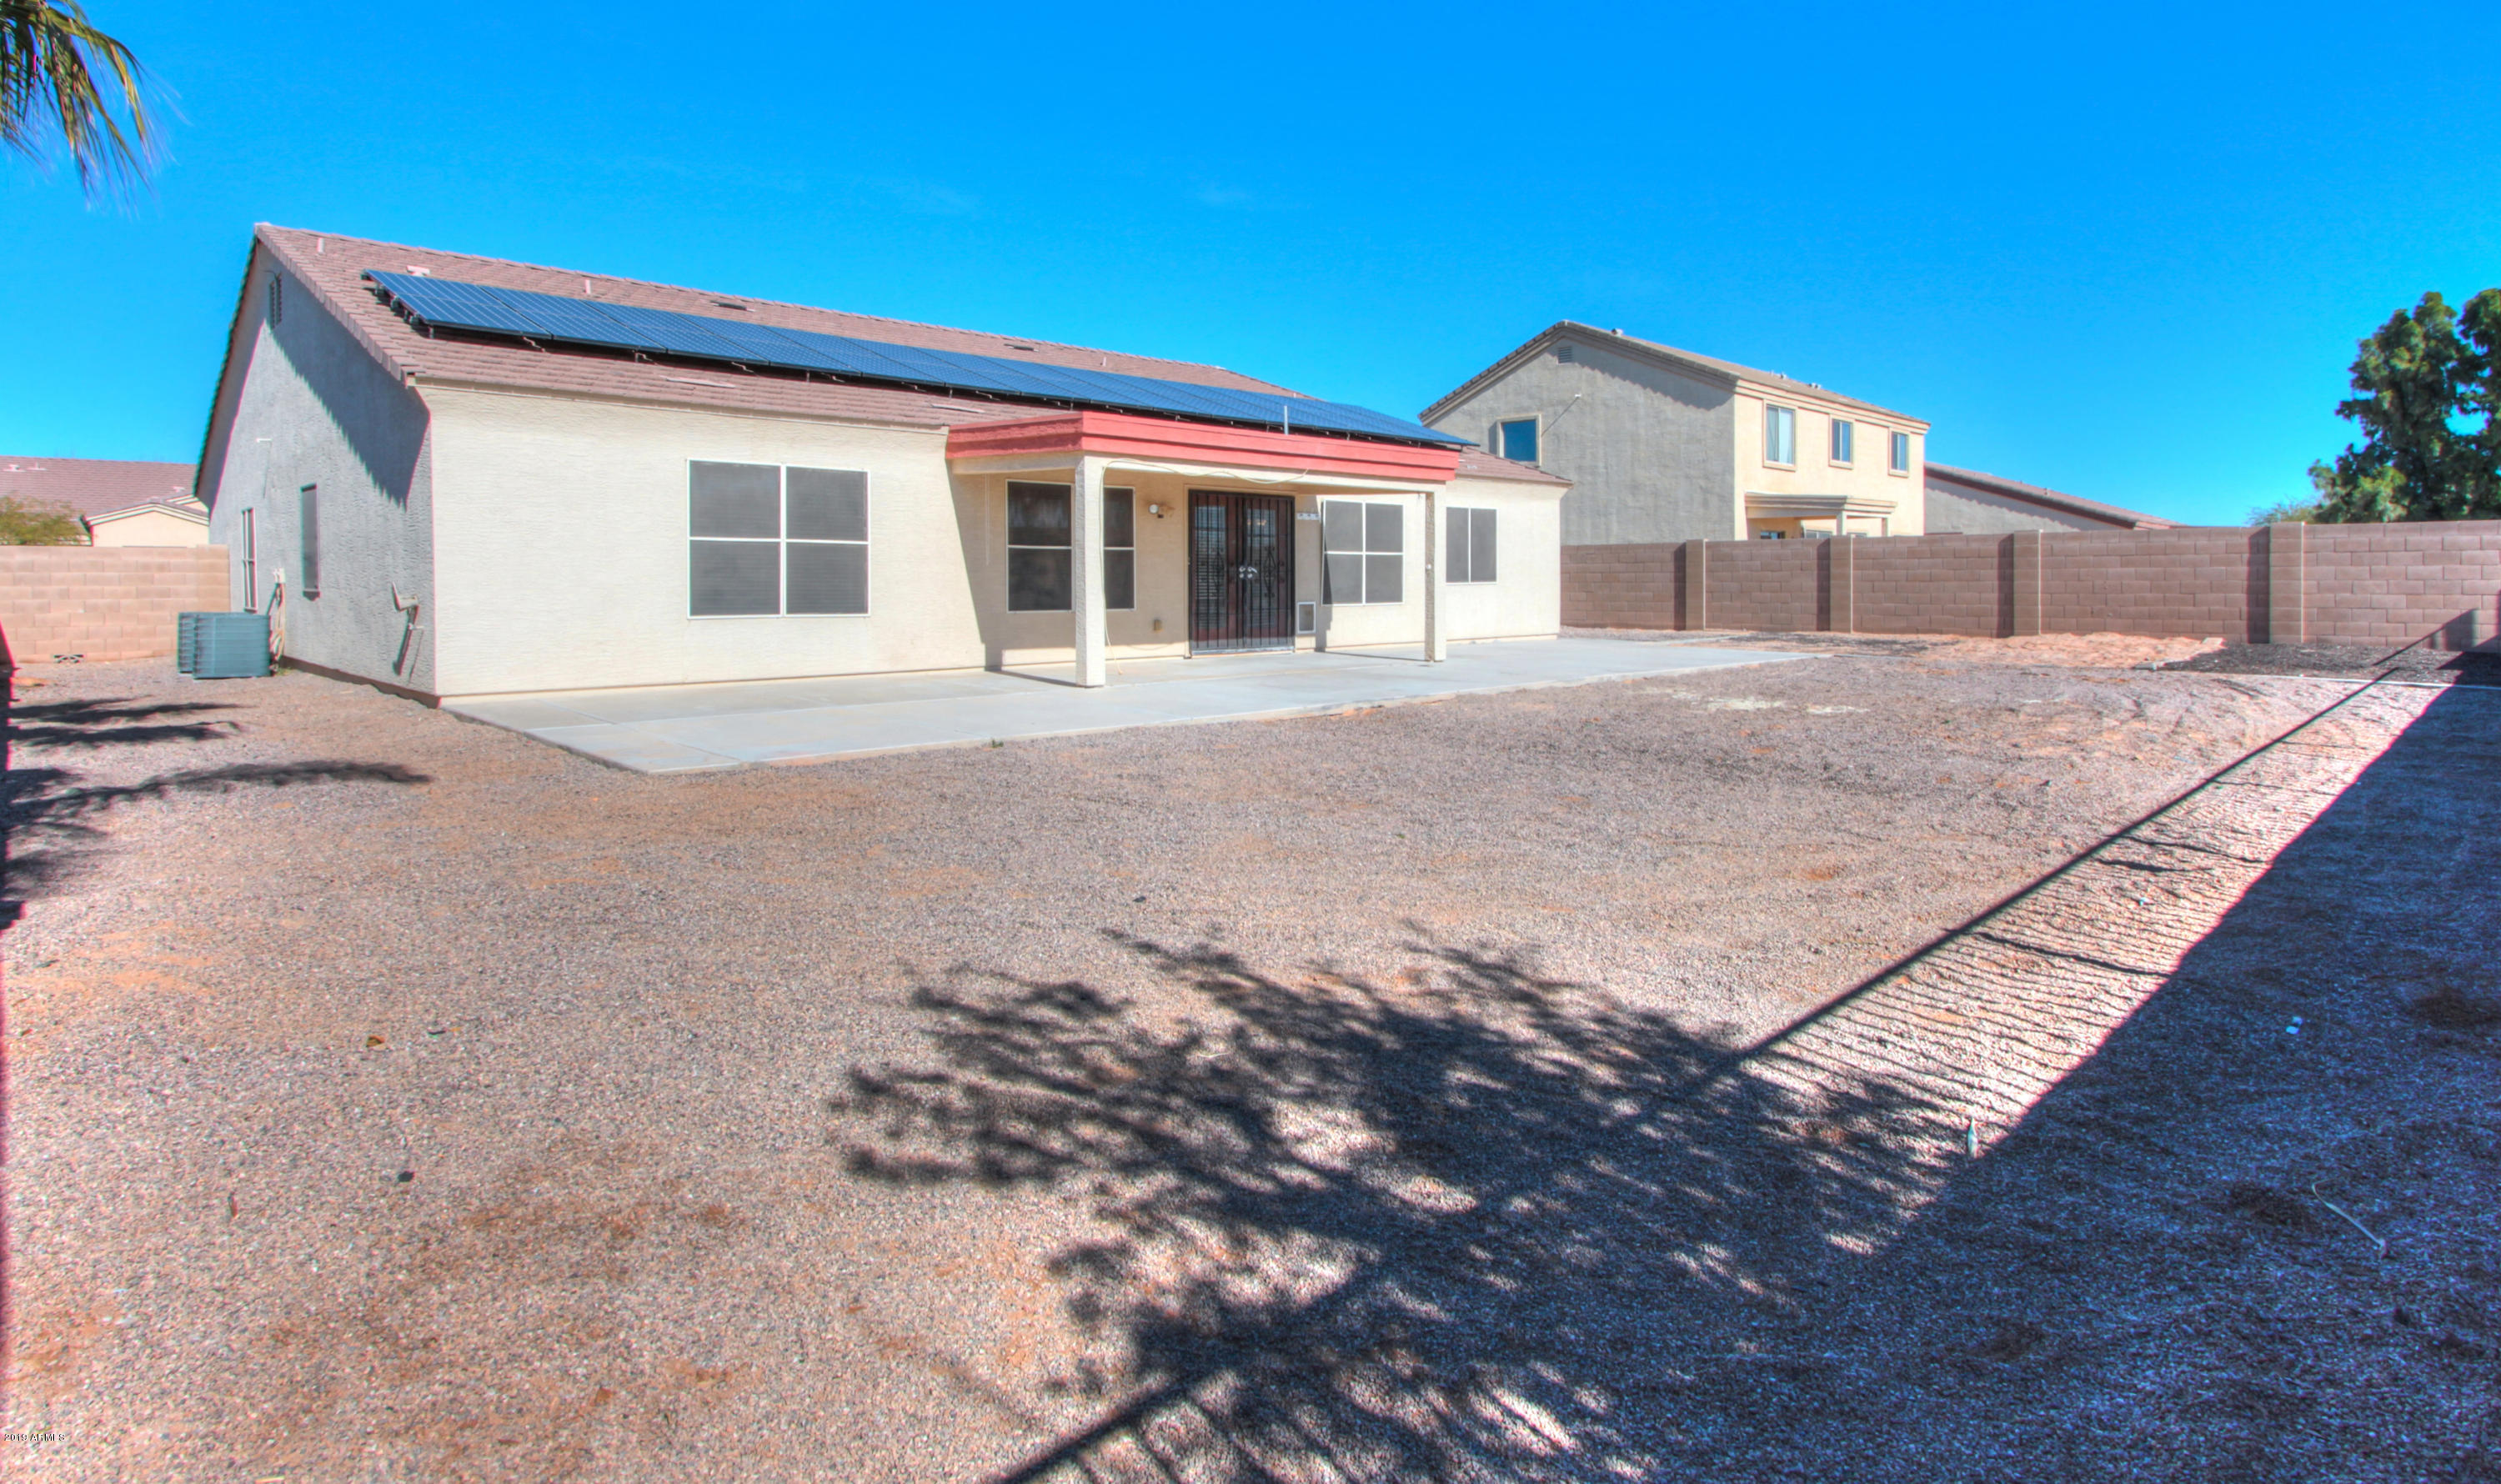 MLS 5856189 491 E BLACK DIAMOND Drive, Casa Grande, AZ 85122 Casa Grande AZ Ghost Ranch